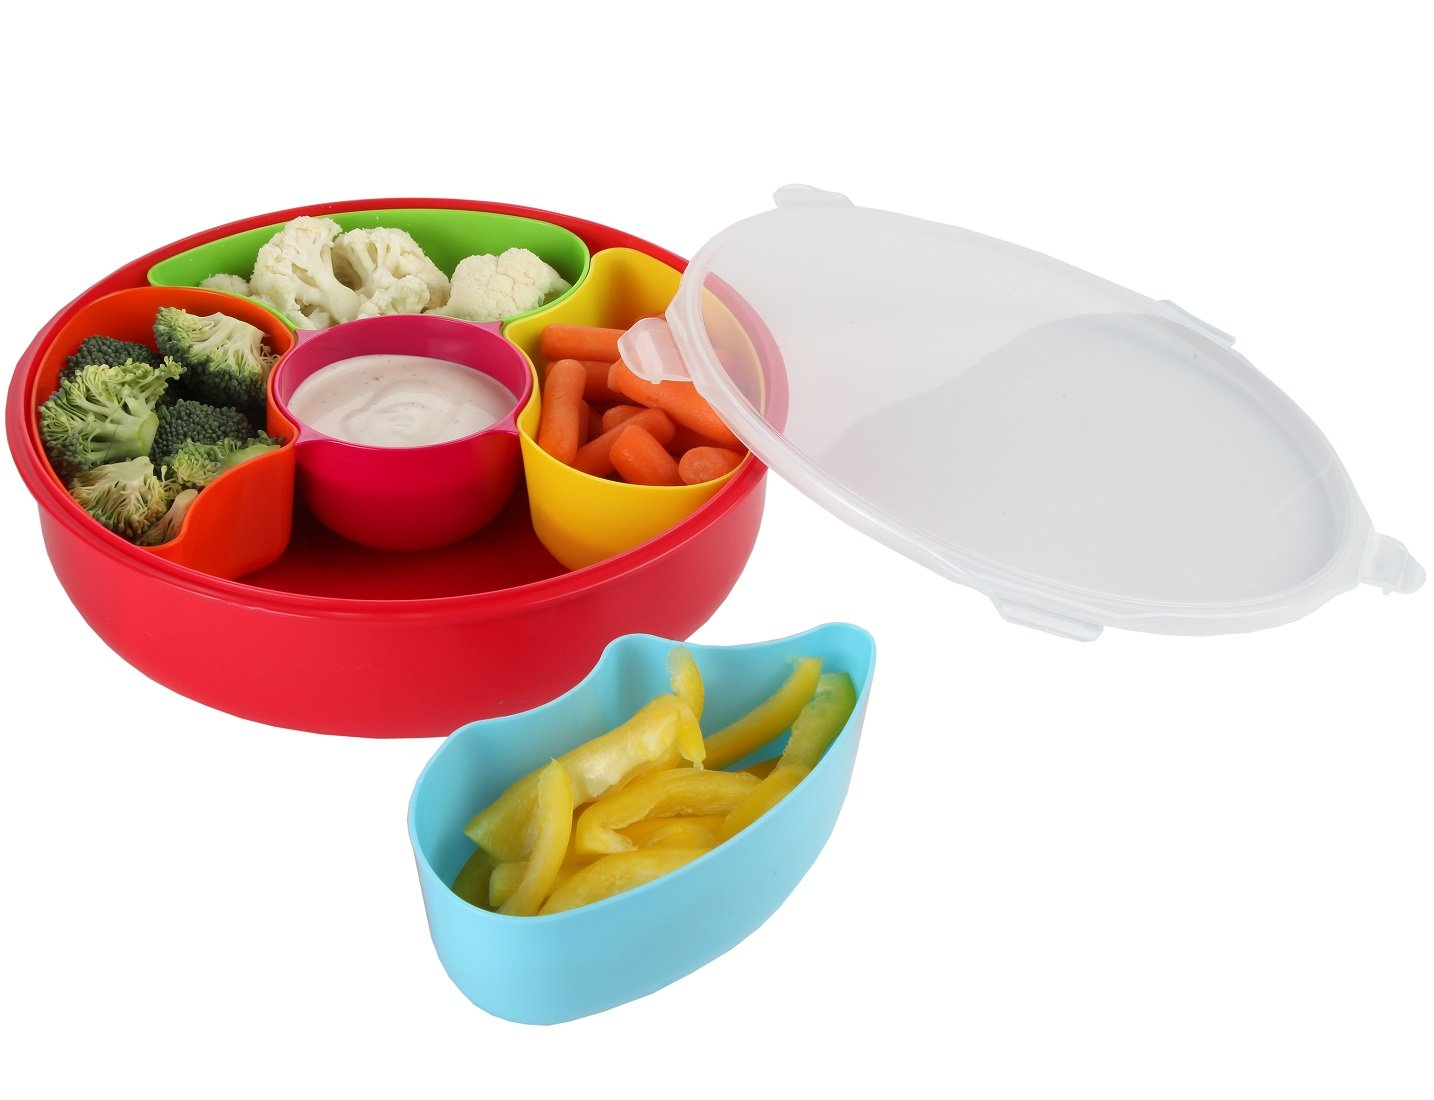 Home-X Sectional Serving Bowl with Cover